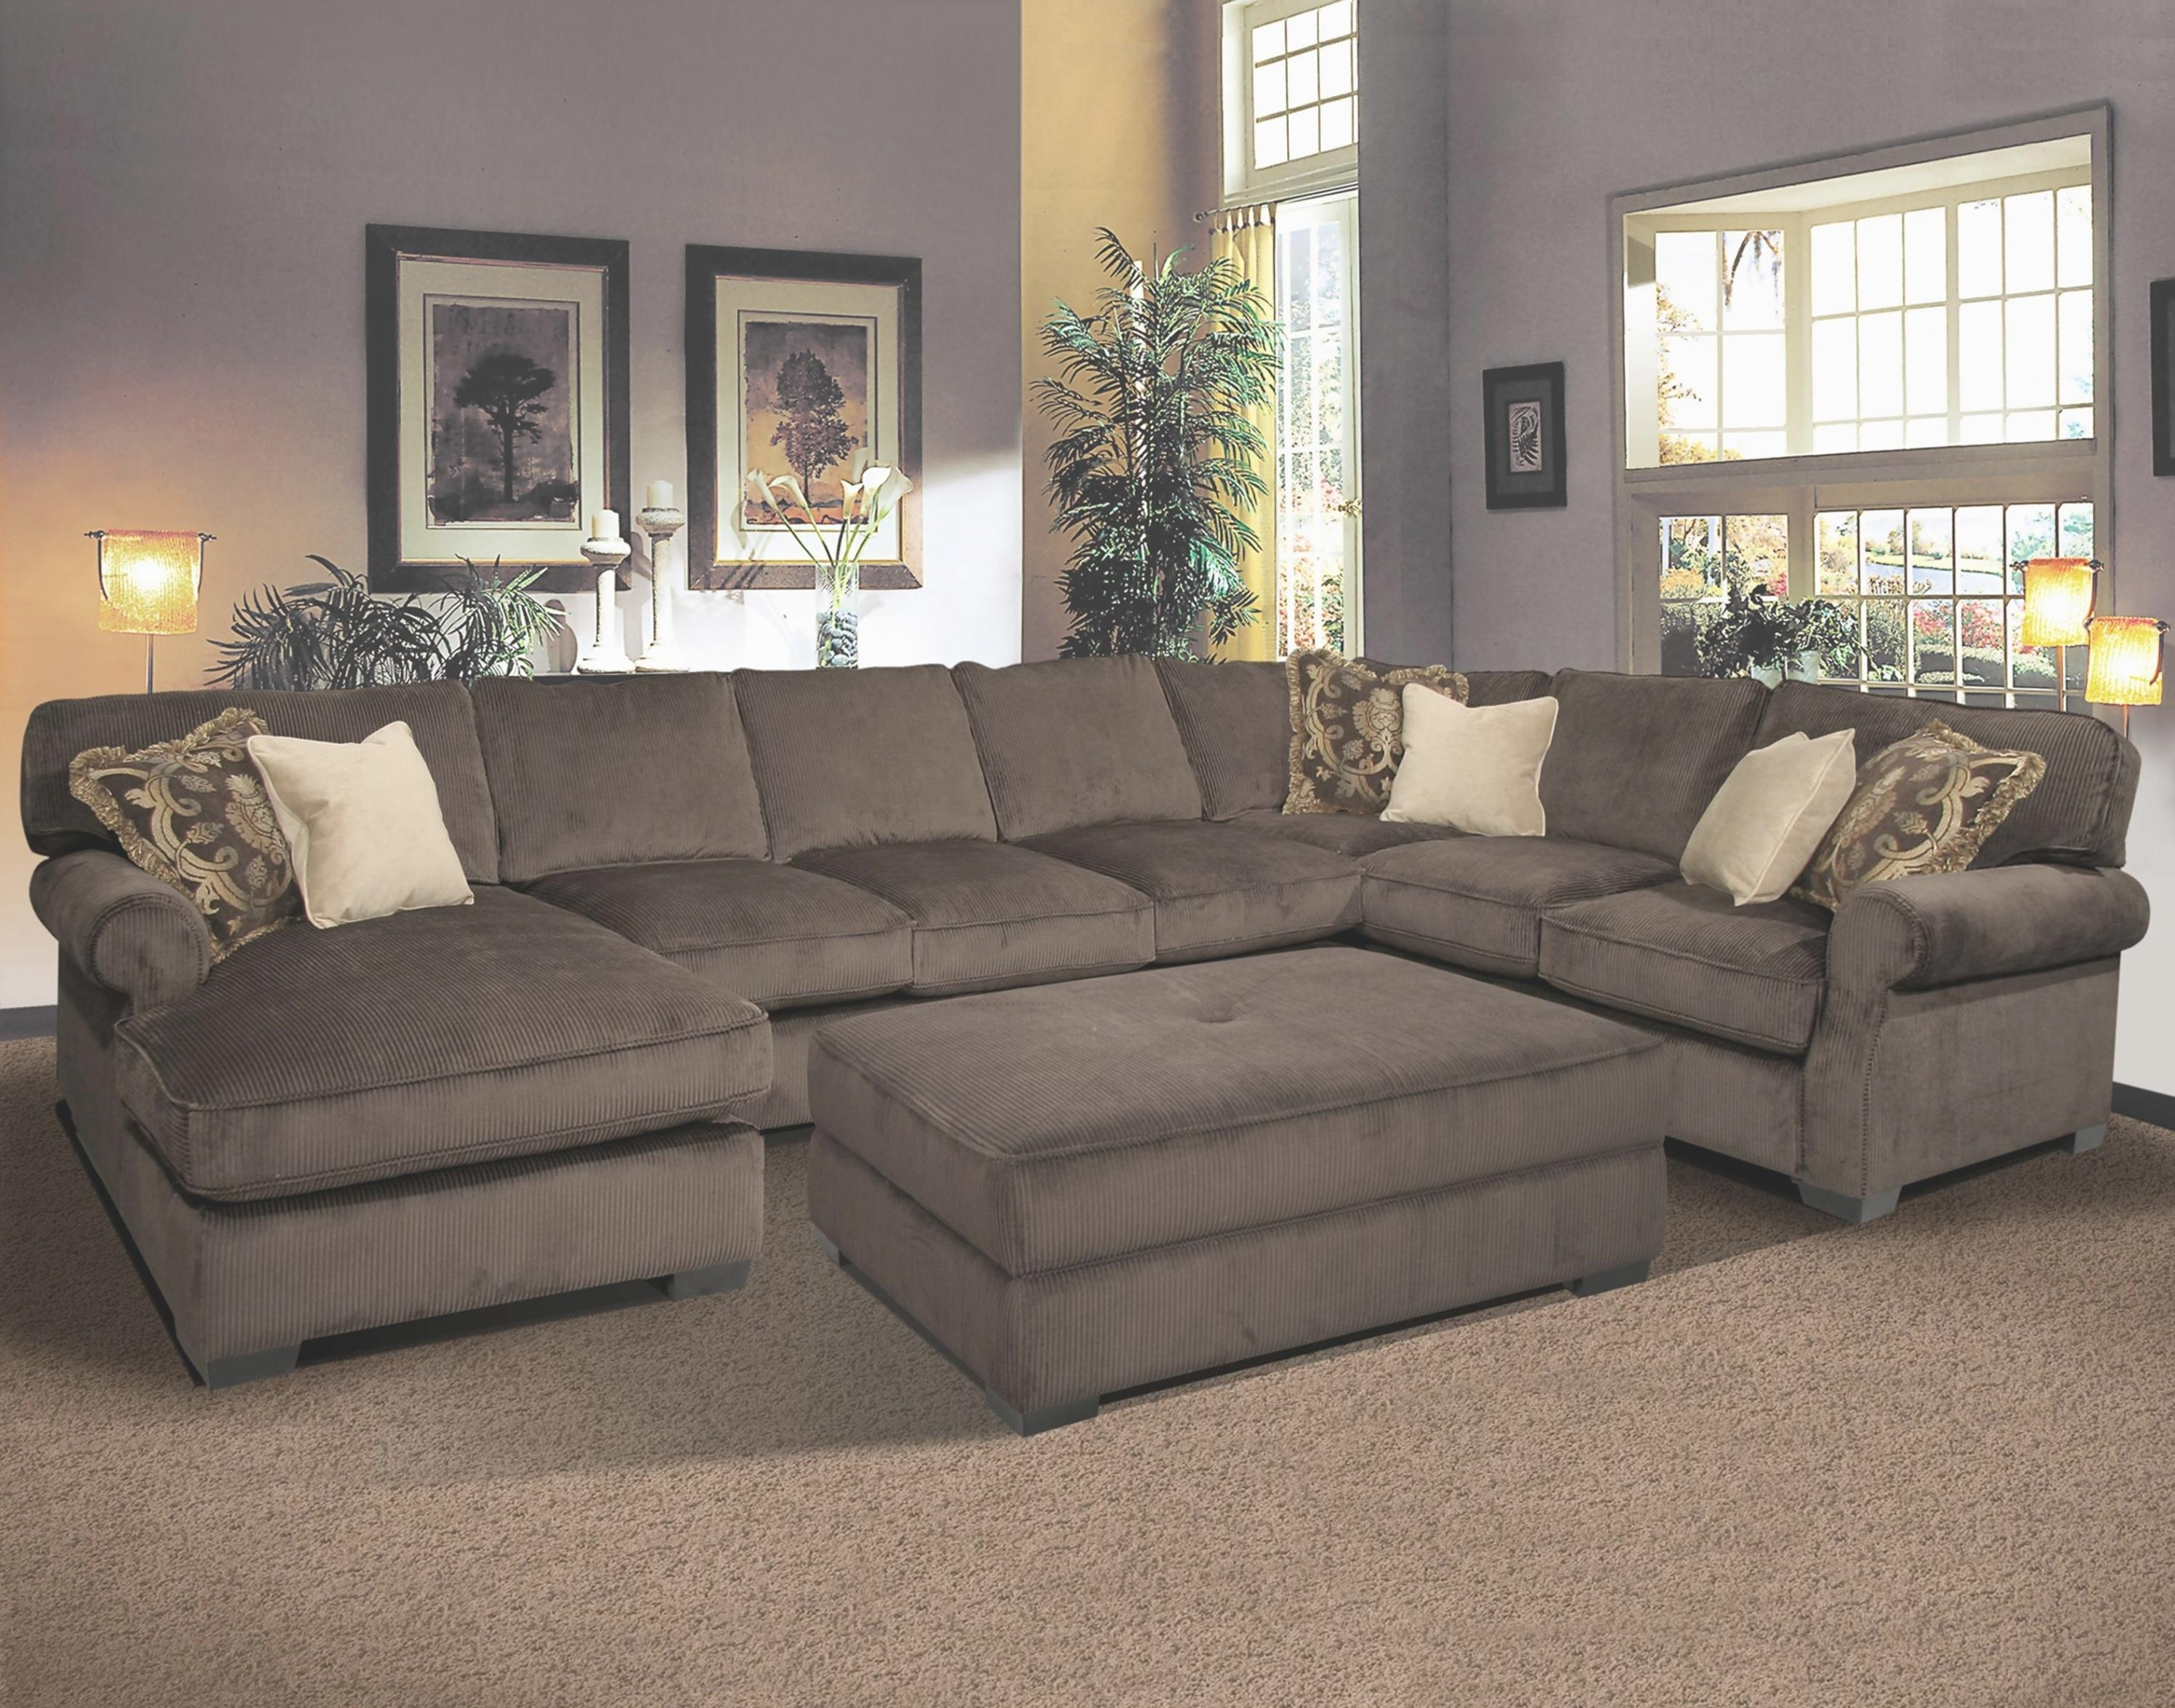 Sofas Center : Sophia Oversized Chaise Sectional Sofa The Dump With Regard To Oversized Sectional Sofa (View 7 of 20)